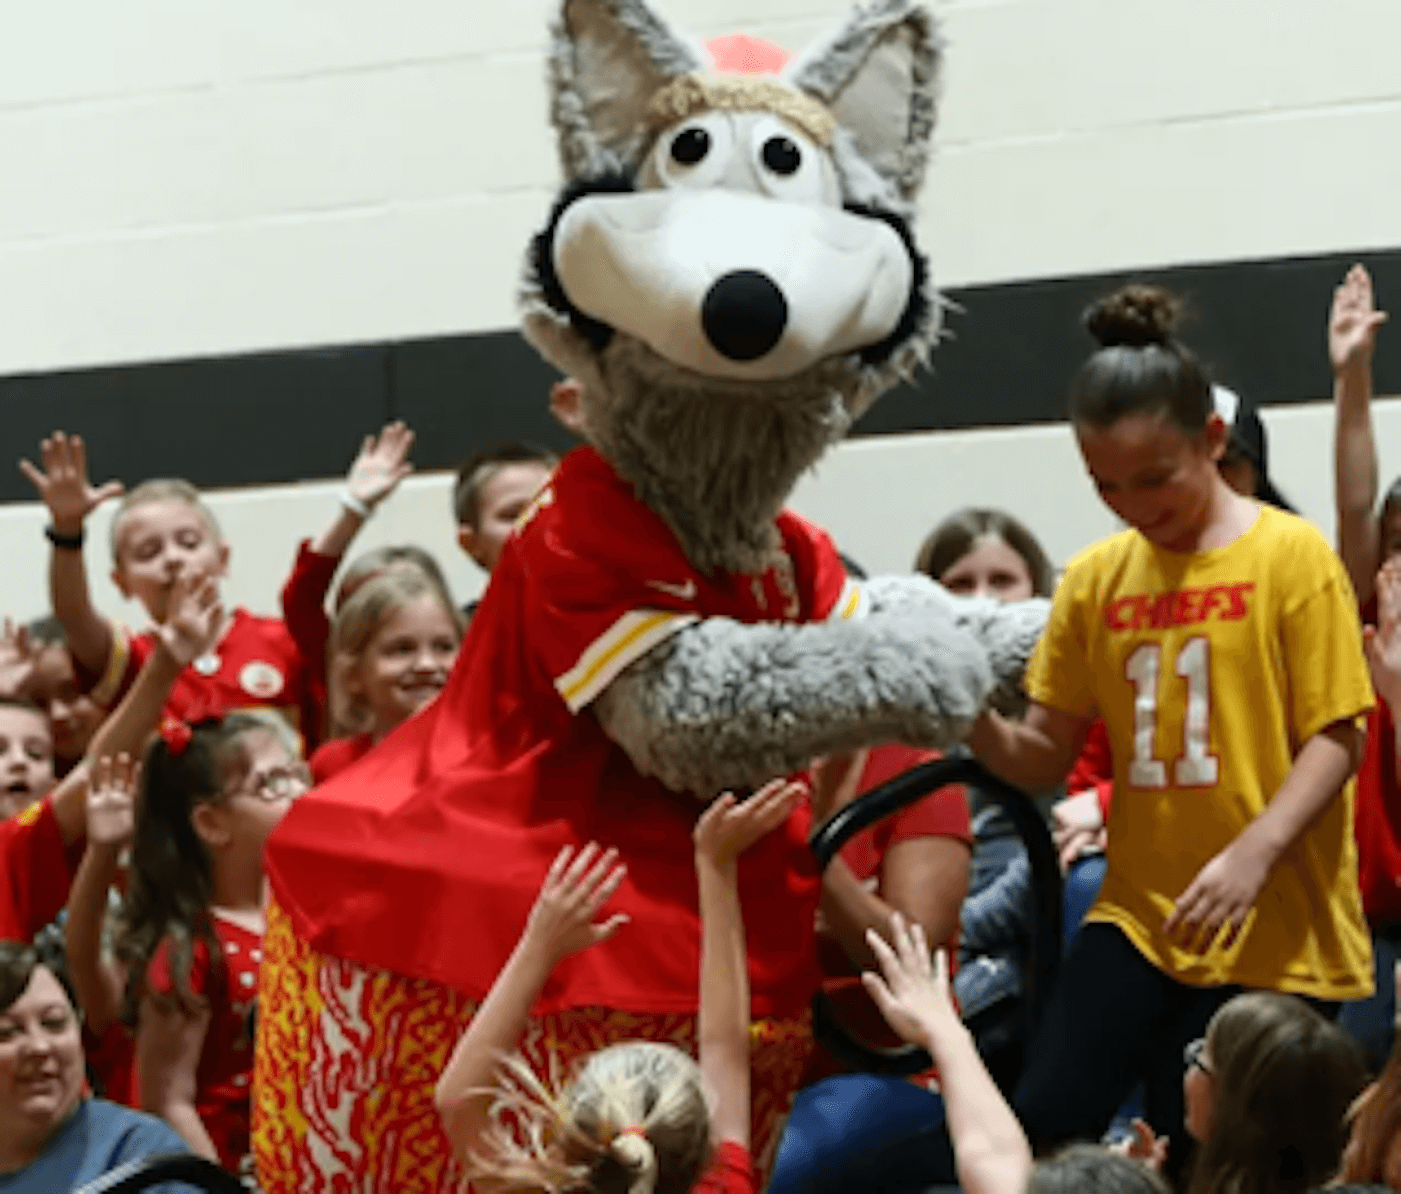 What Is The Name Of The Superbowl Champion Kansas City Chiefs Mascot Goodnewsforpets